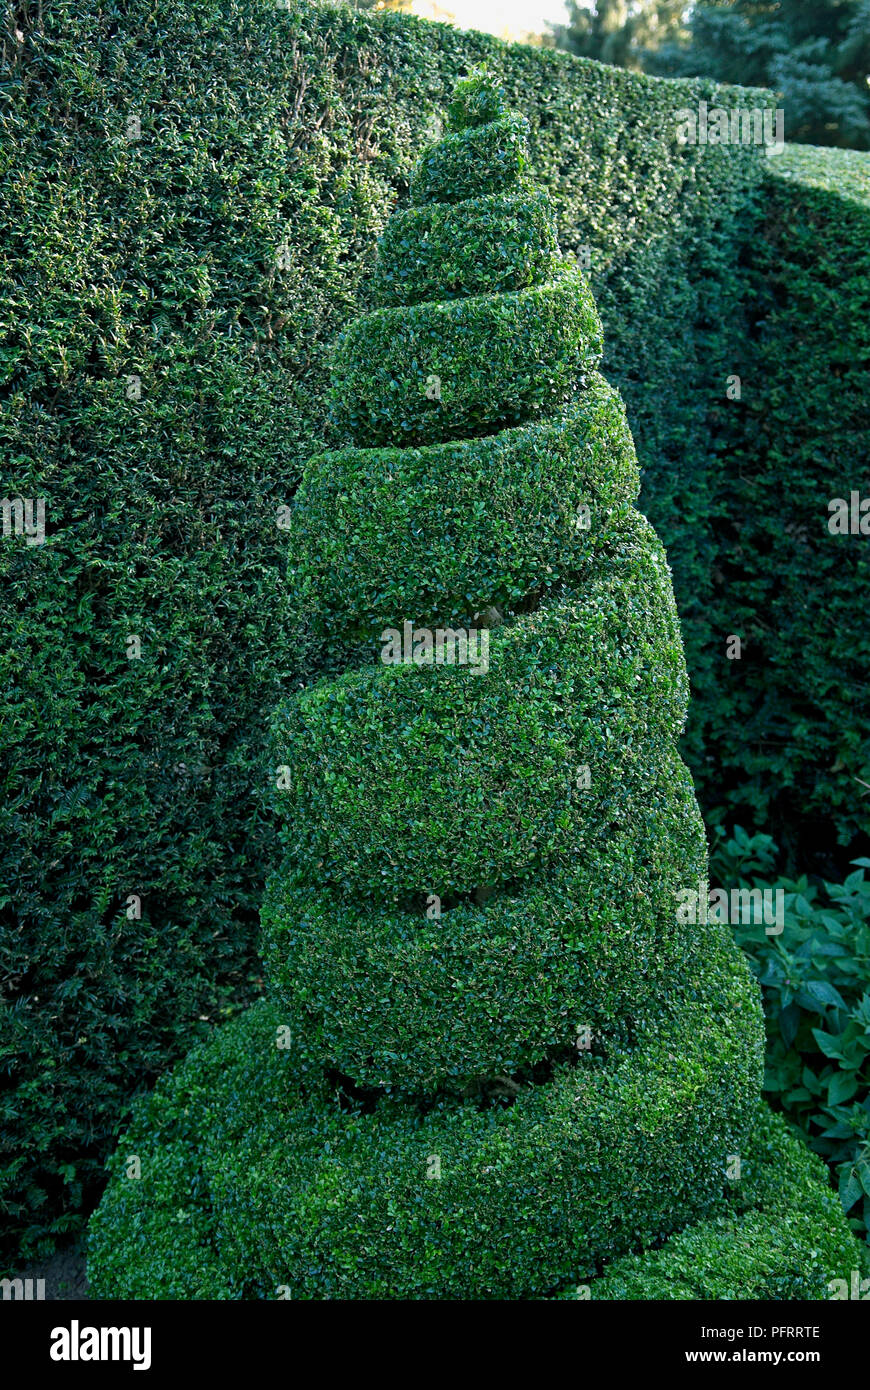 Buxus Box Topiary Spiral In Front Of Hedge In Formal Garden Stock Photo Alamy